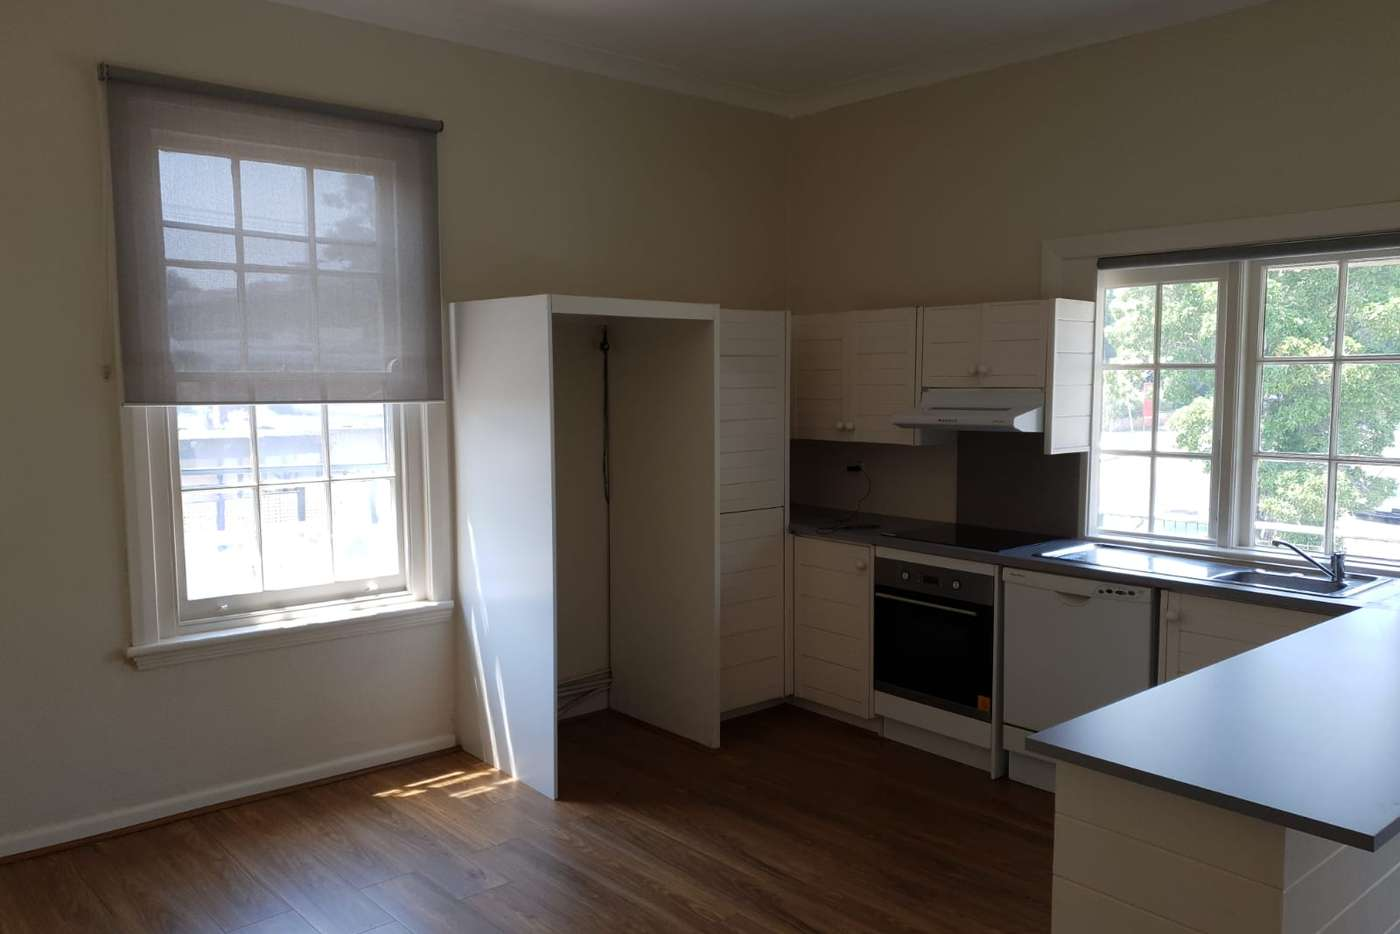 Main view of Homely apartment listing, 81 Queen Street, North Strathfield NSW 2137